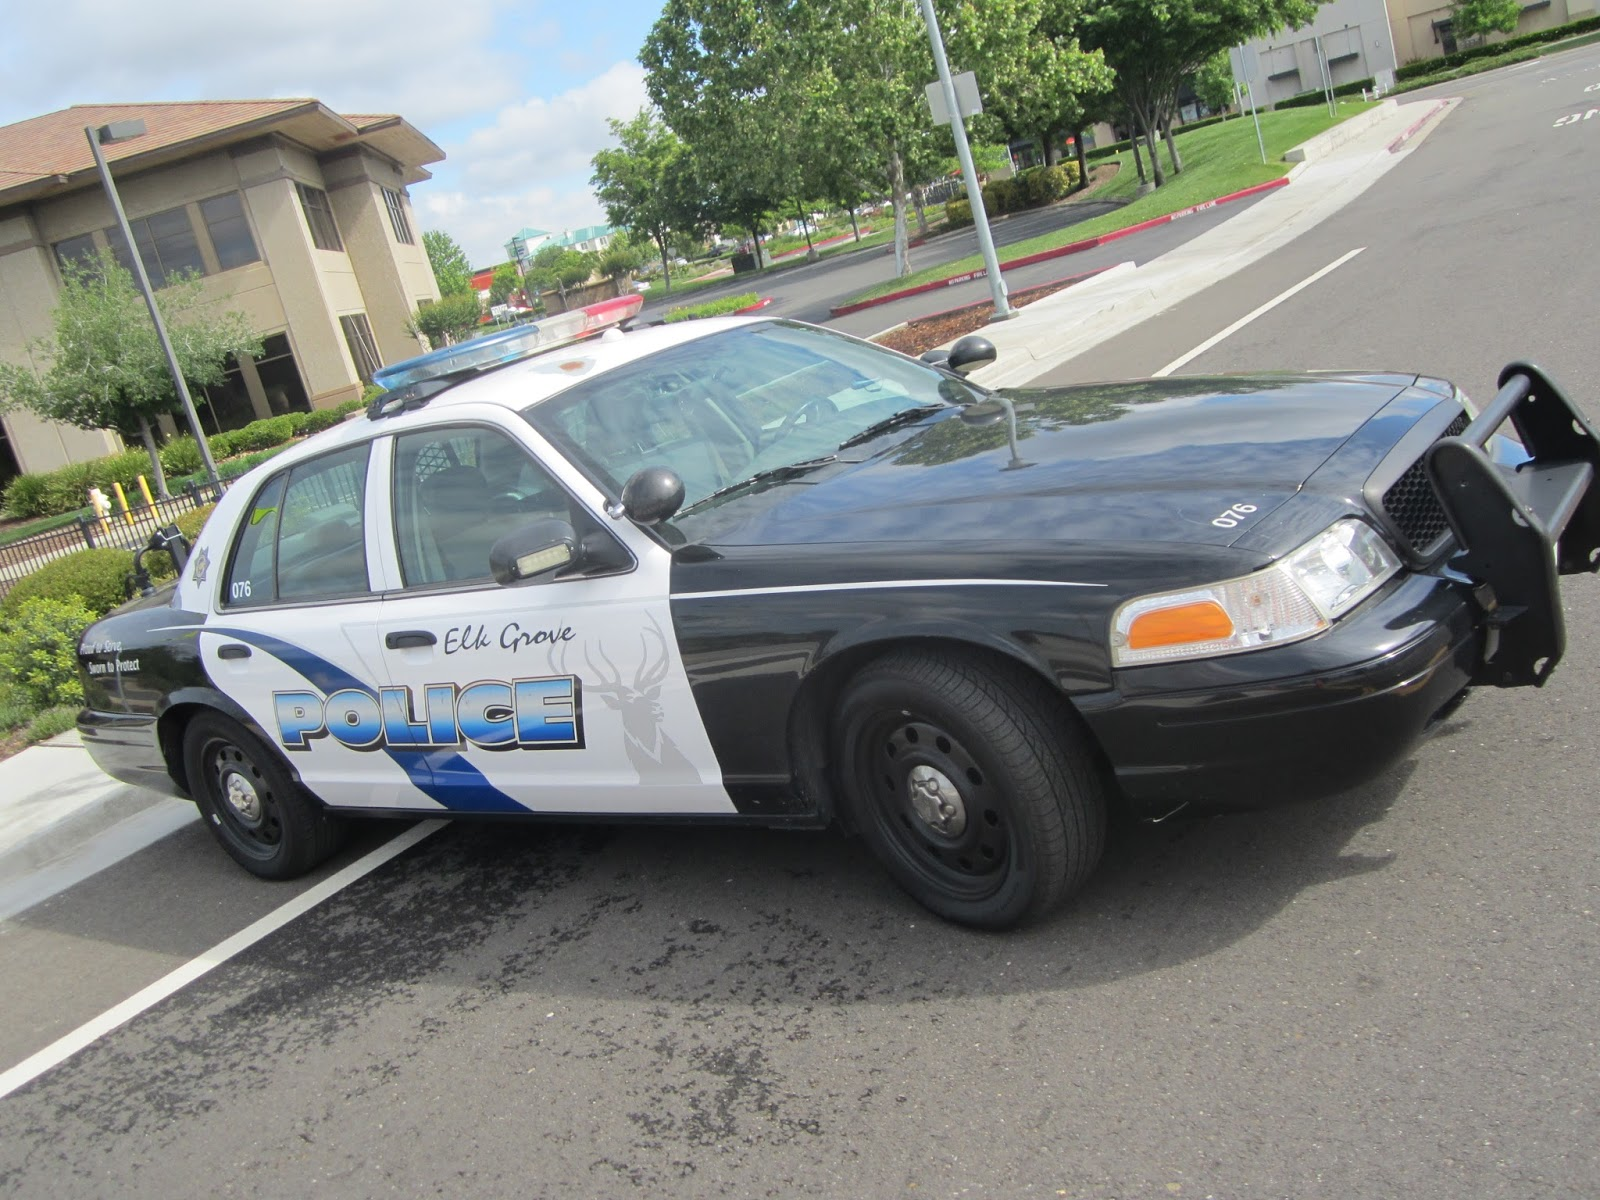 Elk Grove Police Arrests Three Men, One Woman After Neighborhood Fight